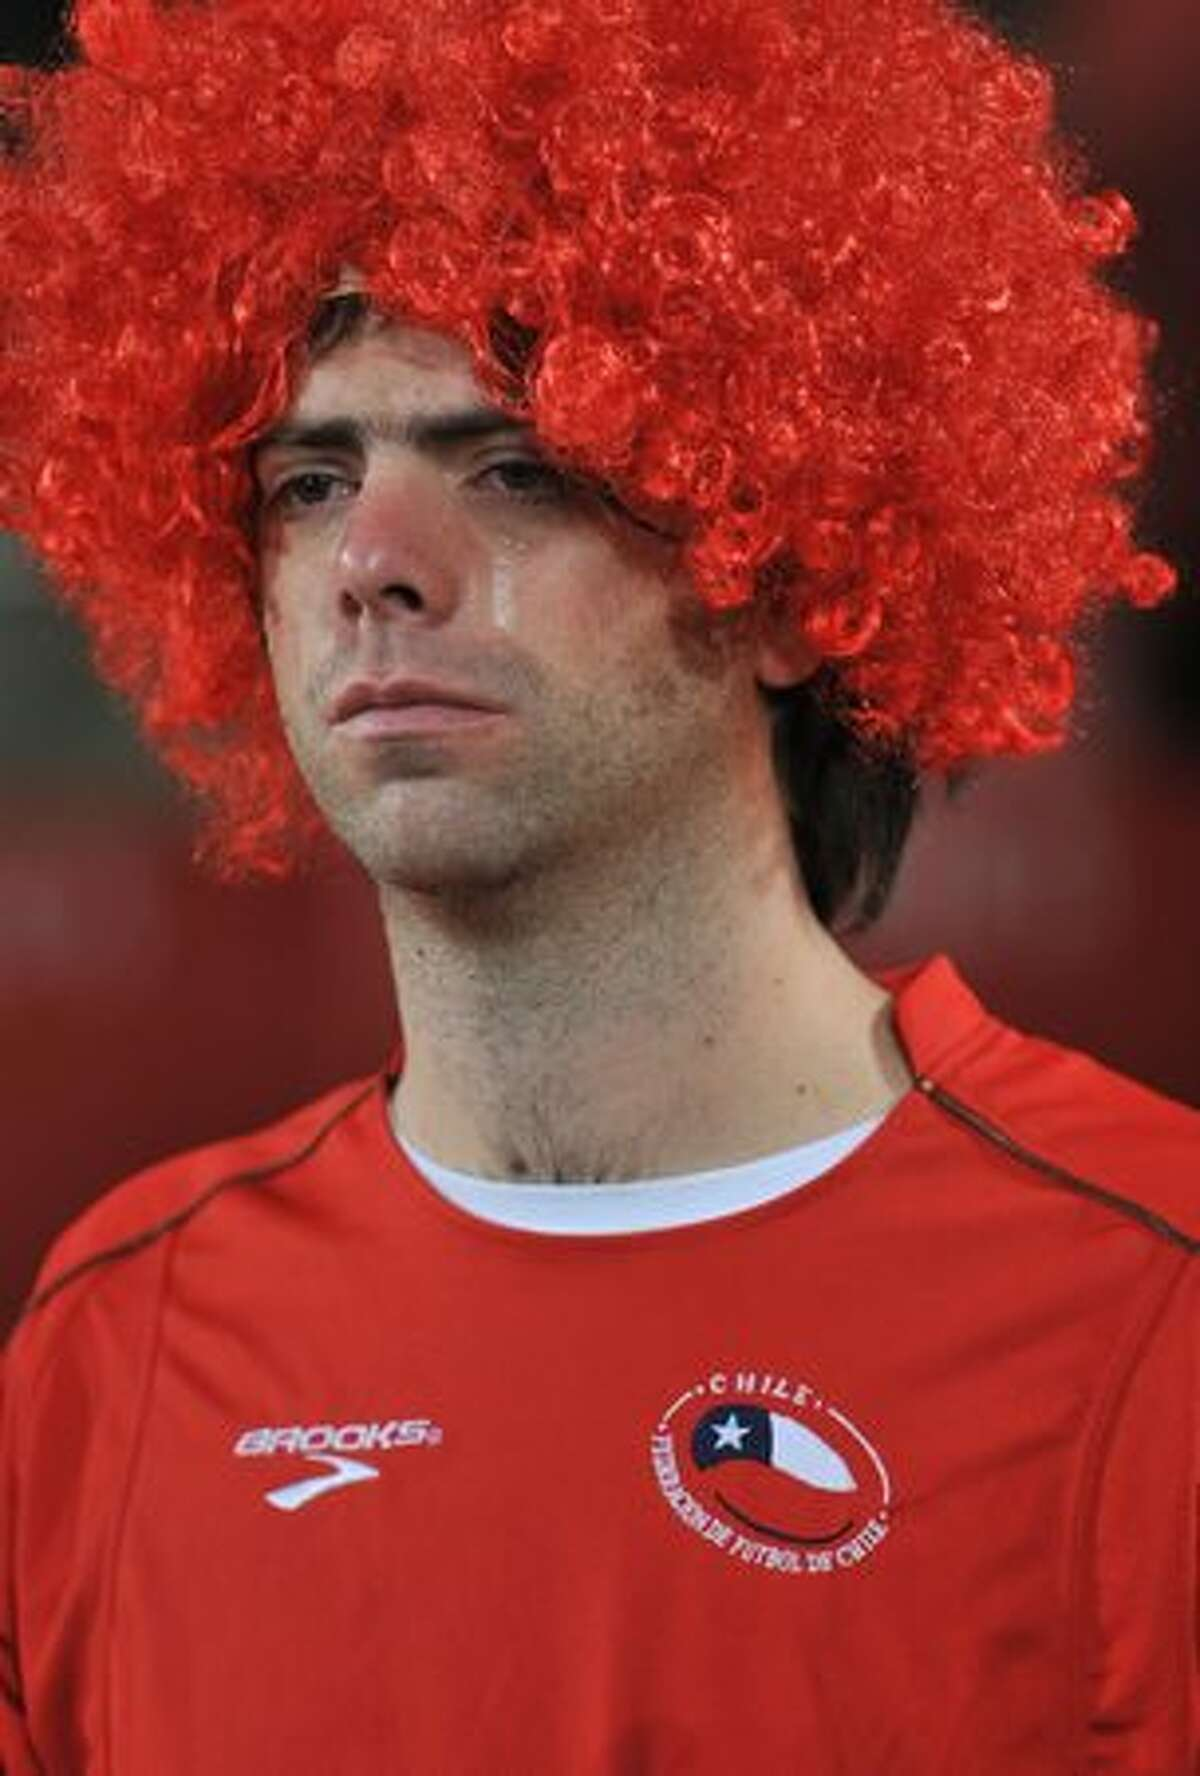 A Chile fan sheds a tear after the 2010 World Cup round of 16 football match Brazil versus Chile at Ellis Park Stadium in Johannesburg. Brazil won the match 3-0.